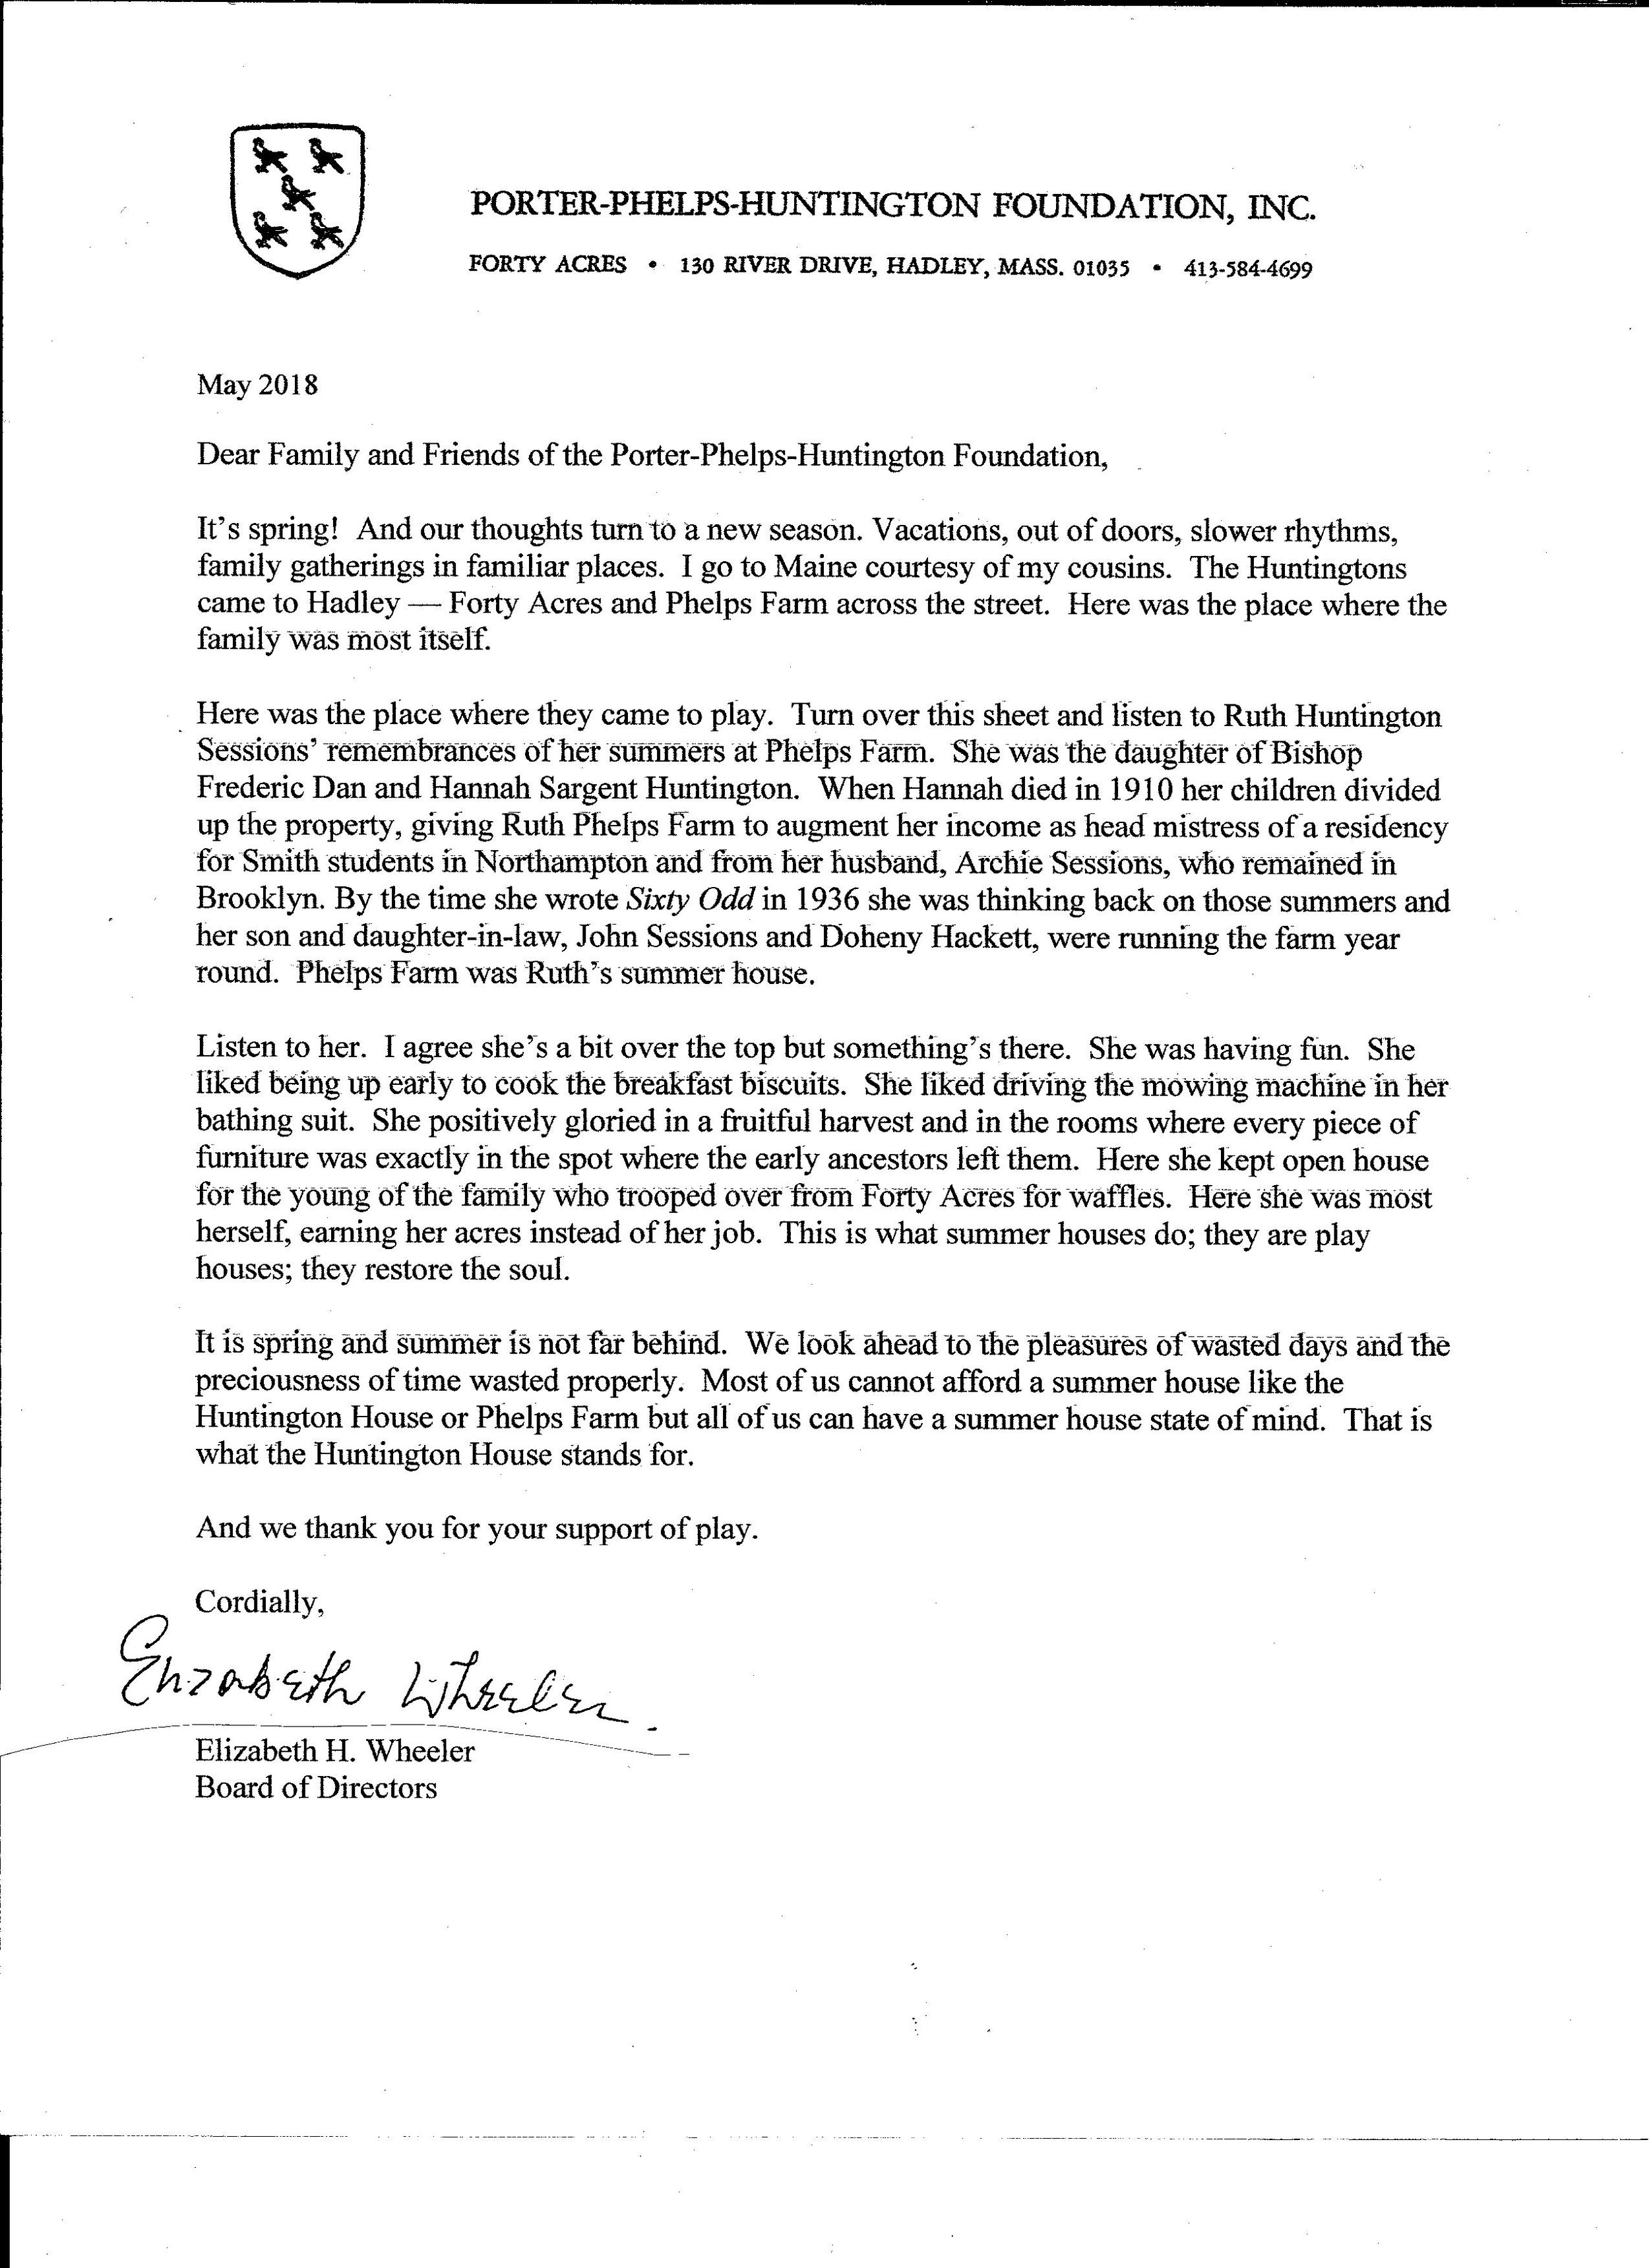 PPH Member Letter may 2018 page 1 002.jpg